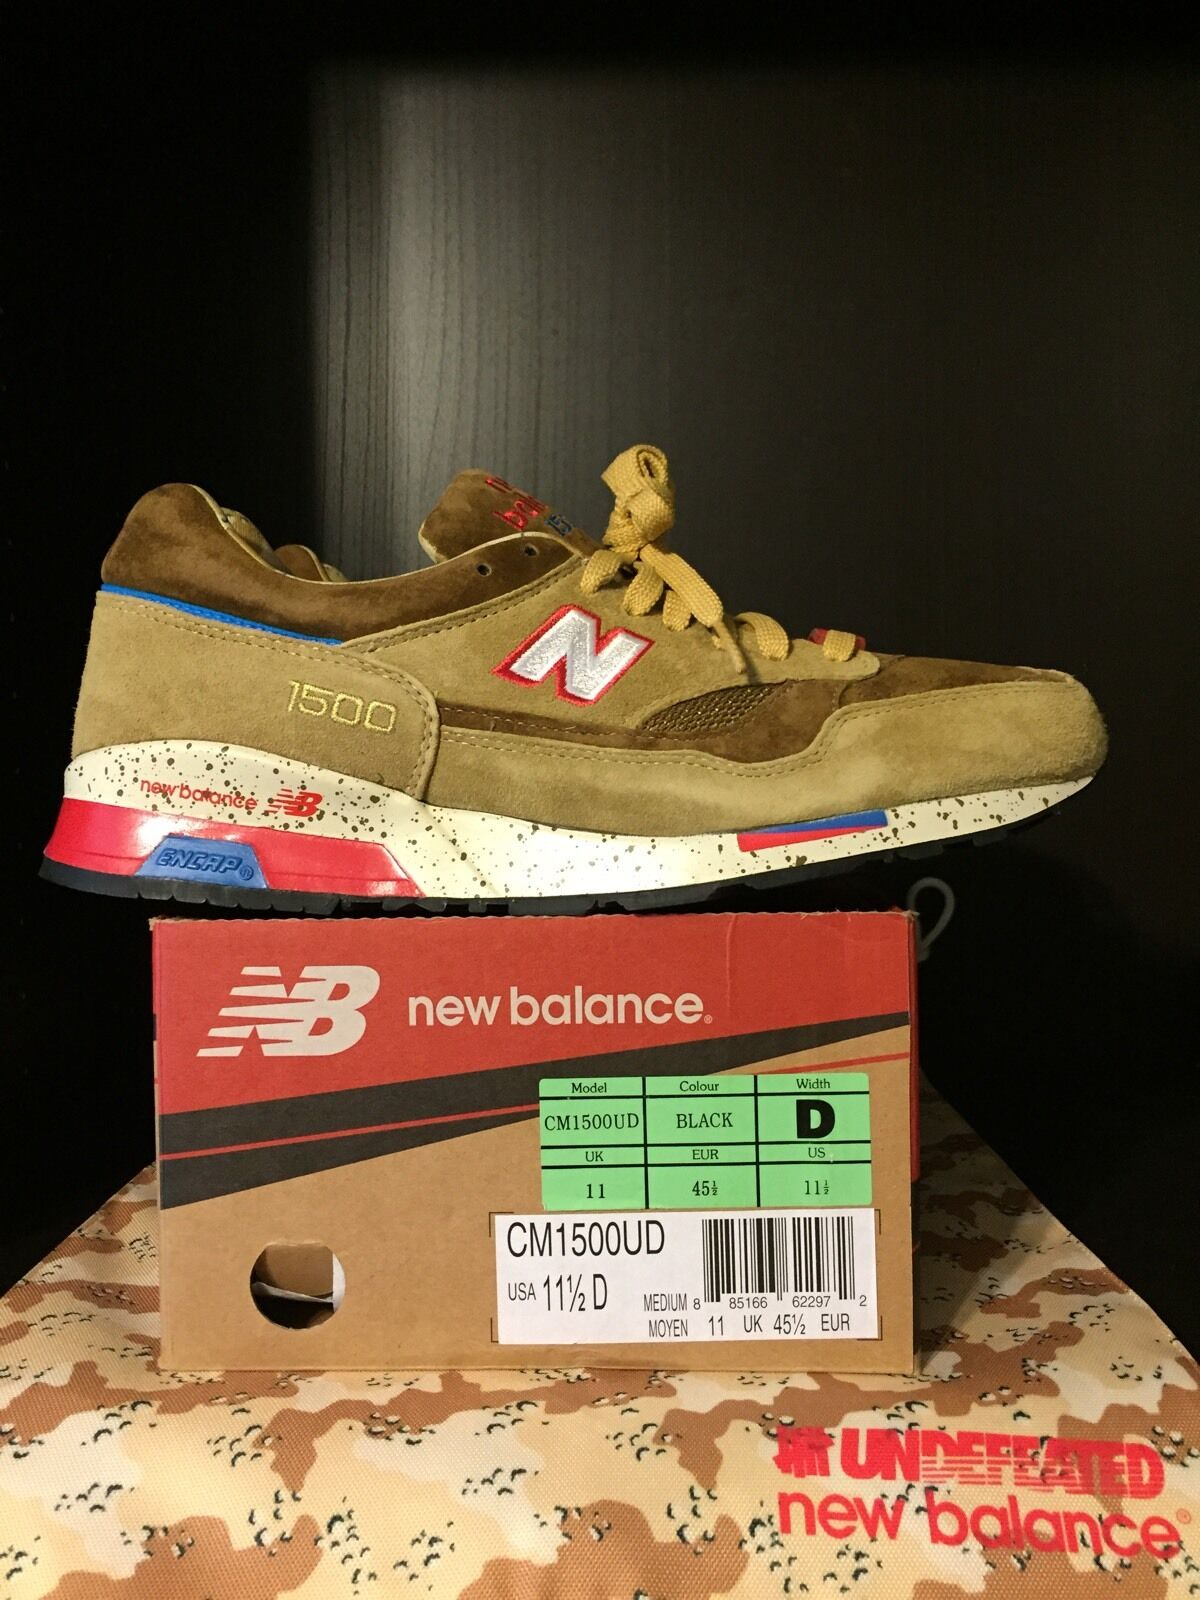 Undefeated (Undftd) x New Balance 1500 -  Desert Storm  - RARE Size 11.5